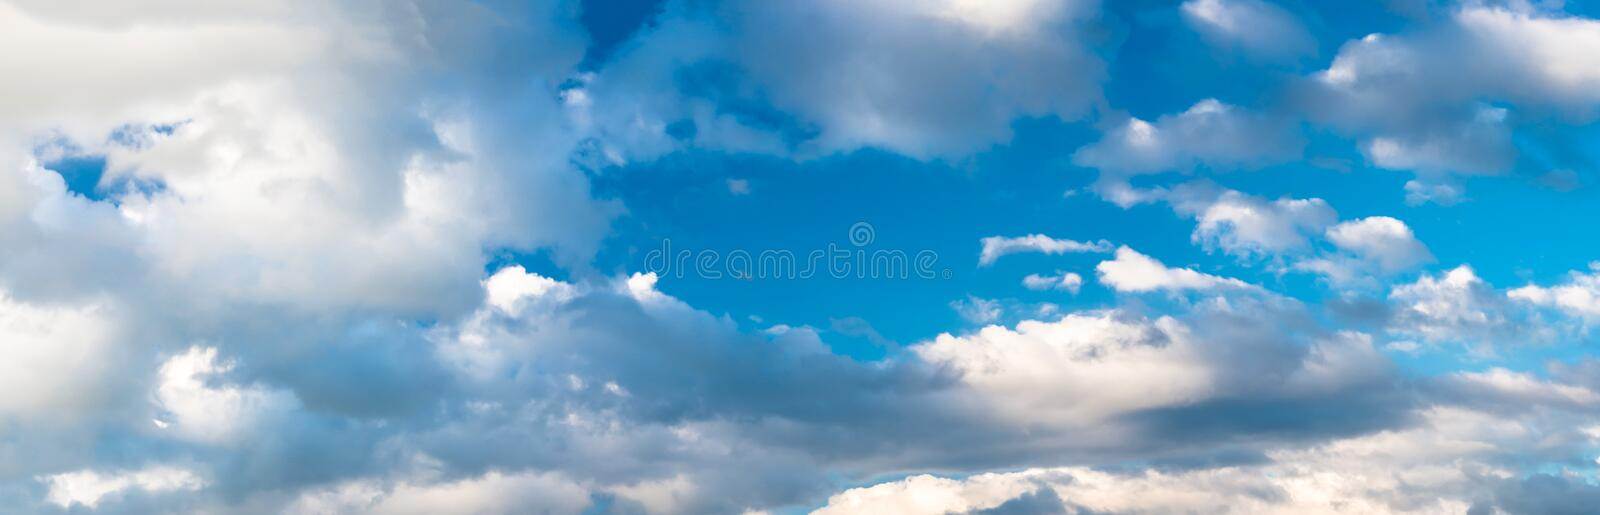 Panorama of beautiful blue sky with clouds on a hot summer day. High resolution stock photography